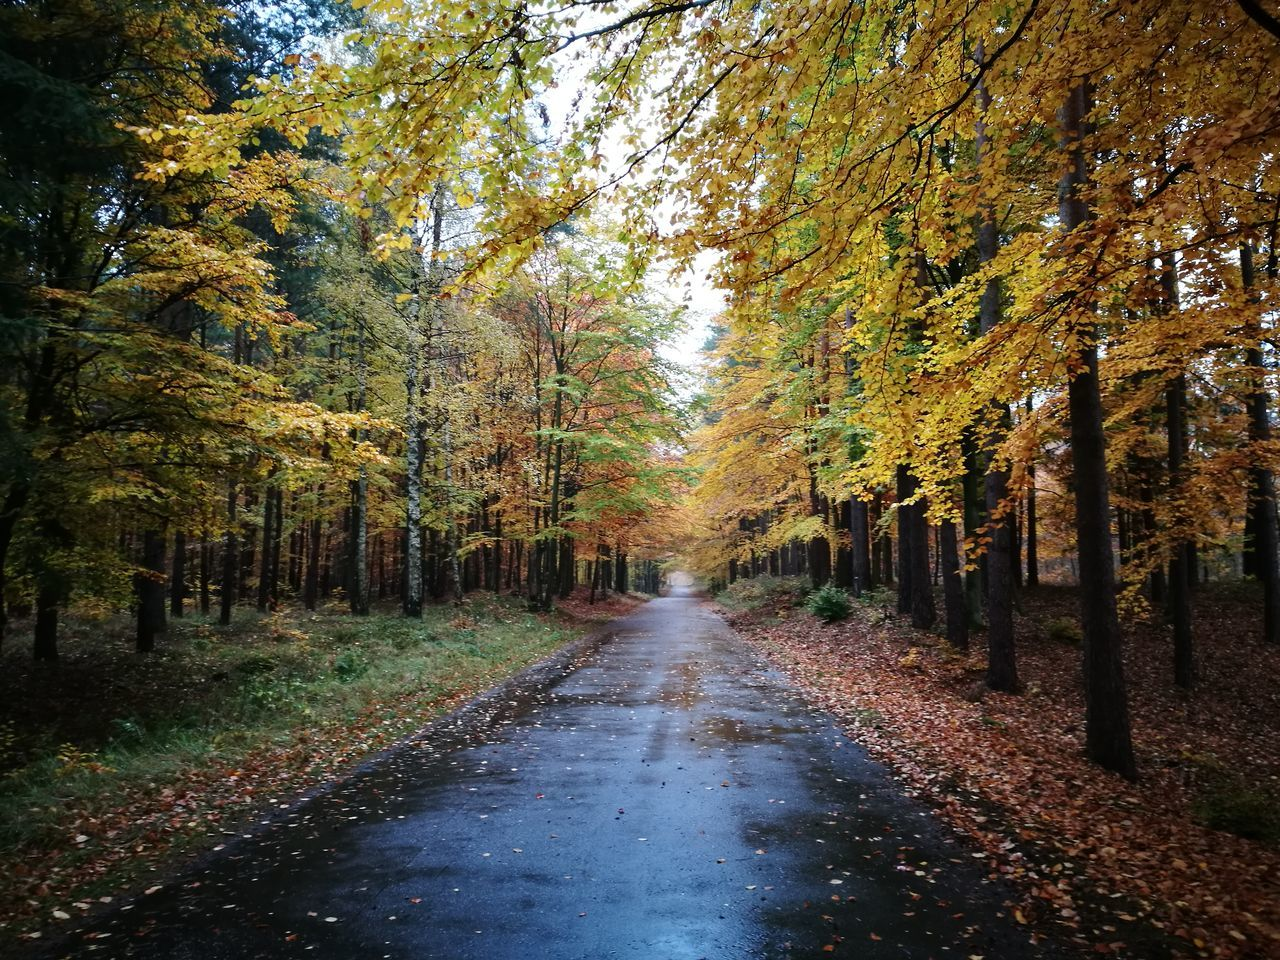 autumn, tree, change, leaf, nature, forest, the way forward, beauty in nature, no people, tranquility, tranquil scene, day, road, scenics, outdoors